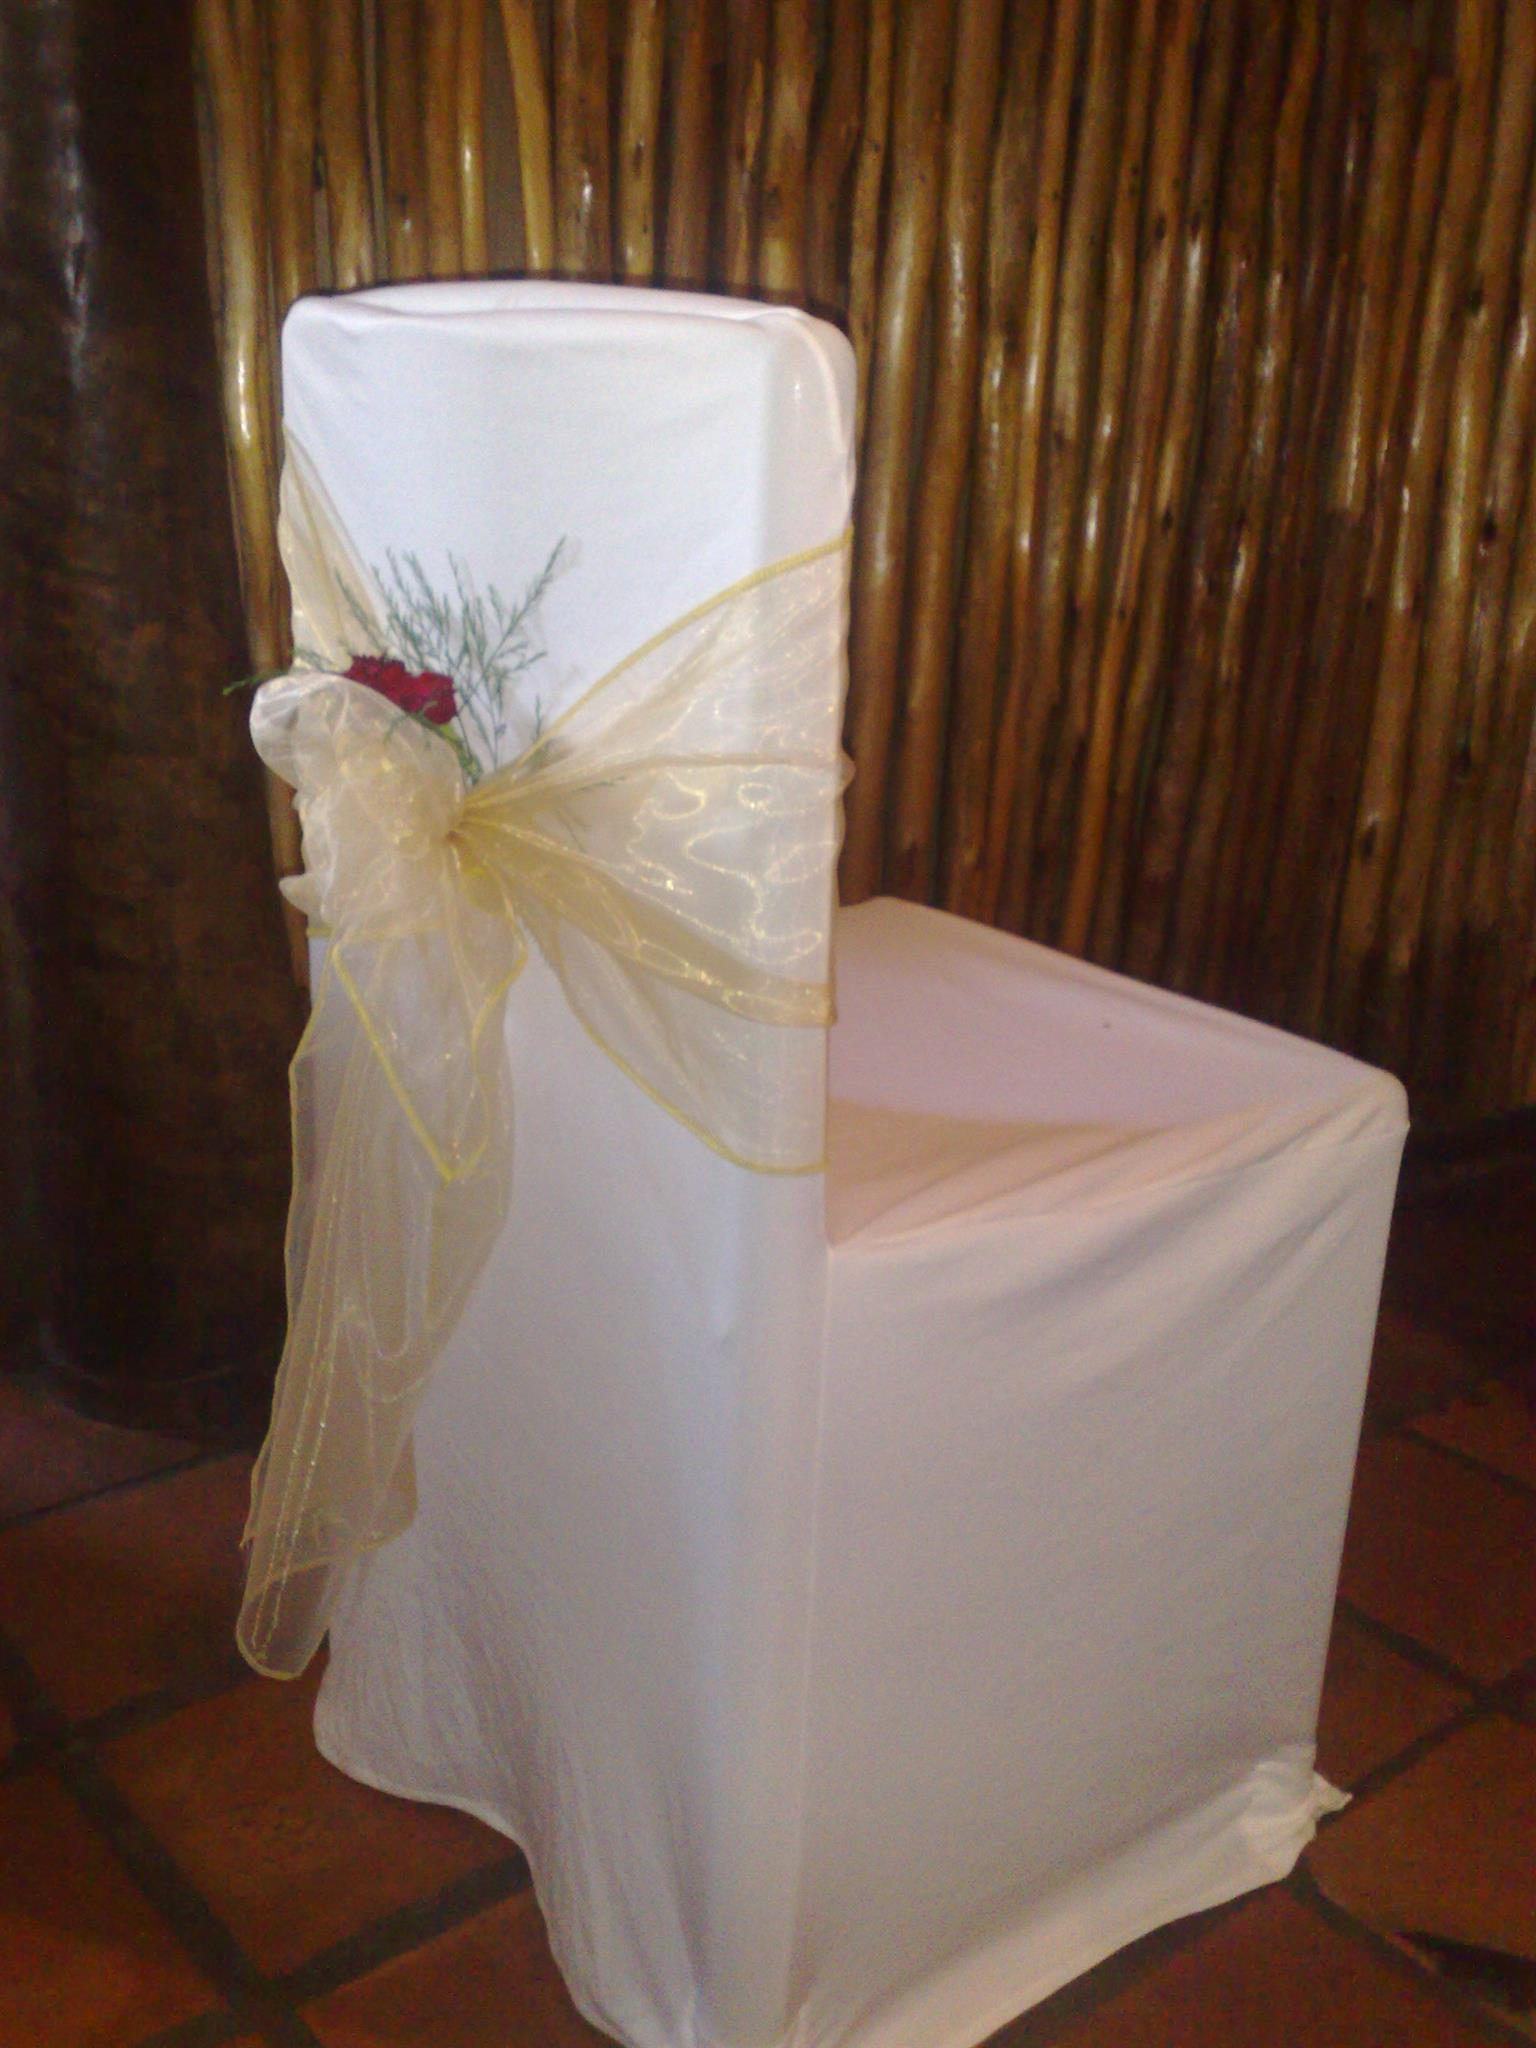 LIBRA CREATIONS: Table Cloths, Chair Covers, Overlays, Table